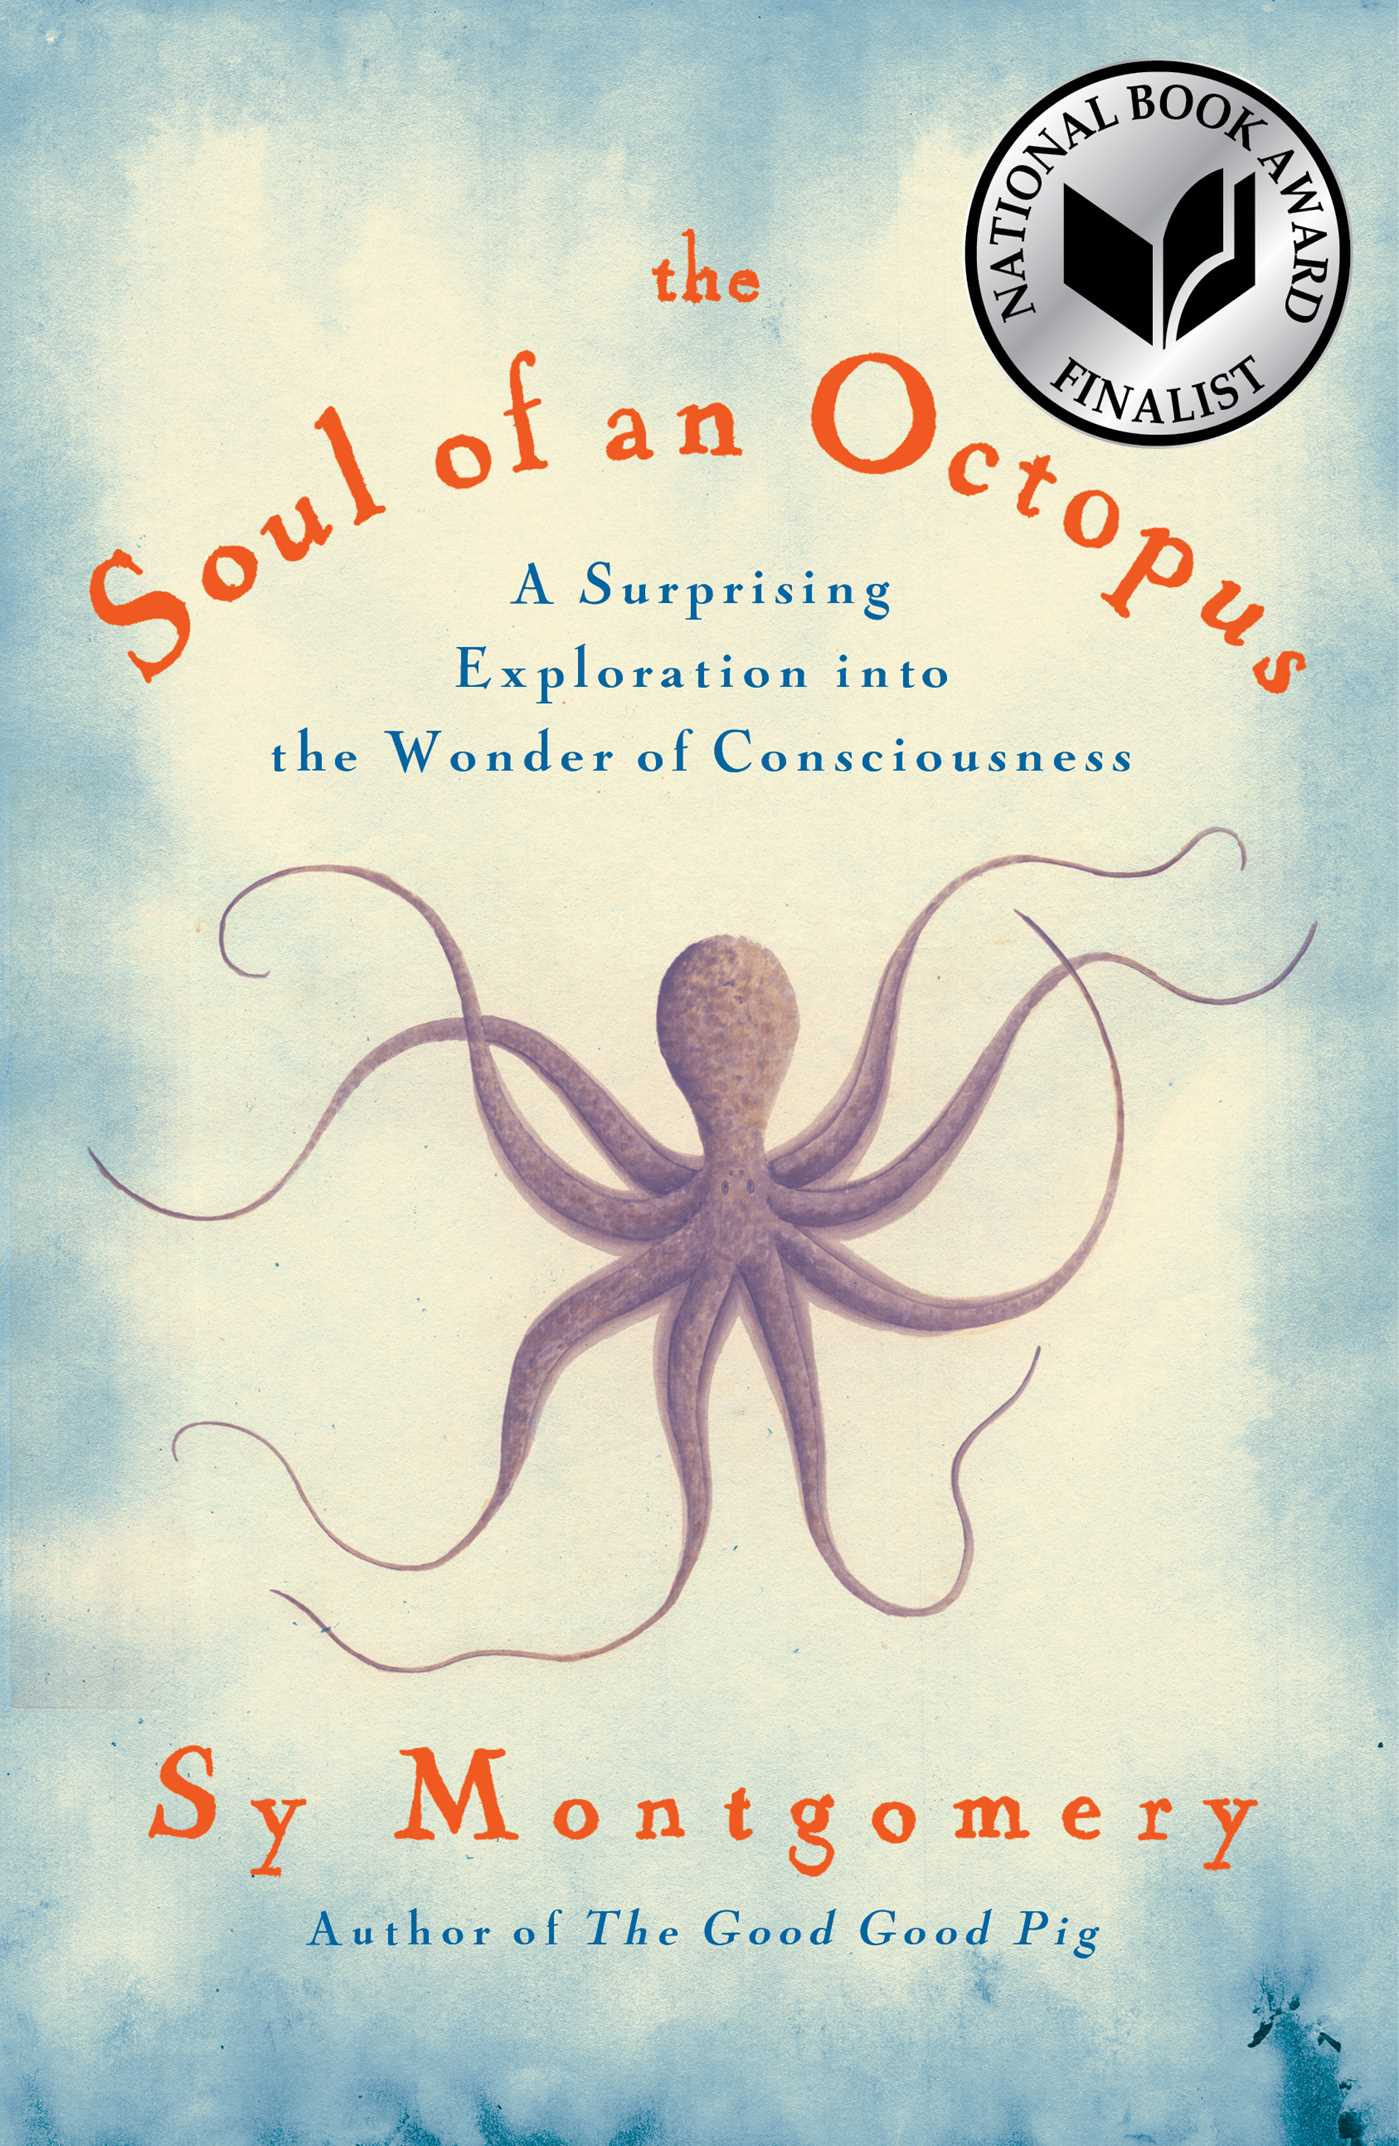 The soul of an octopus 9781451697742 hr